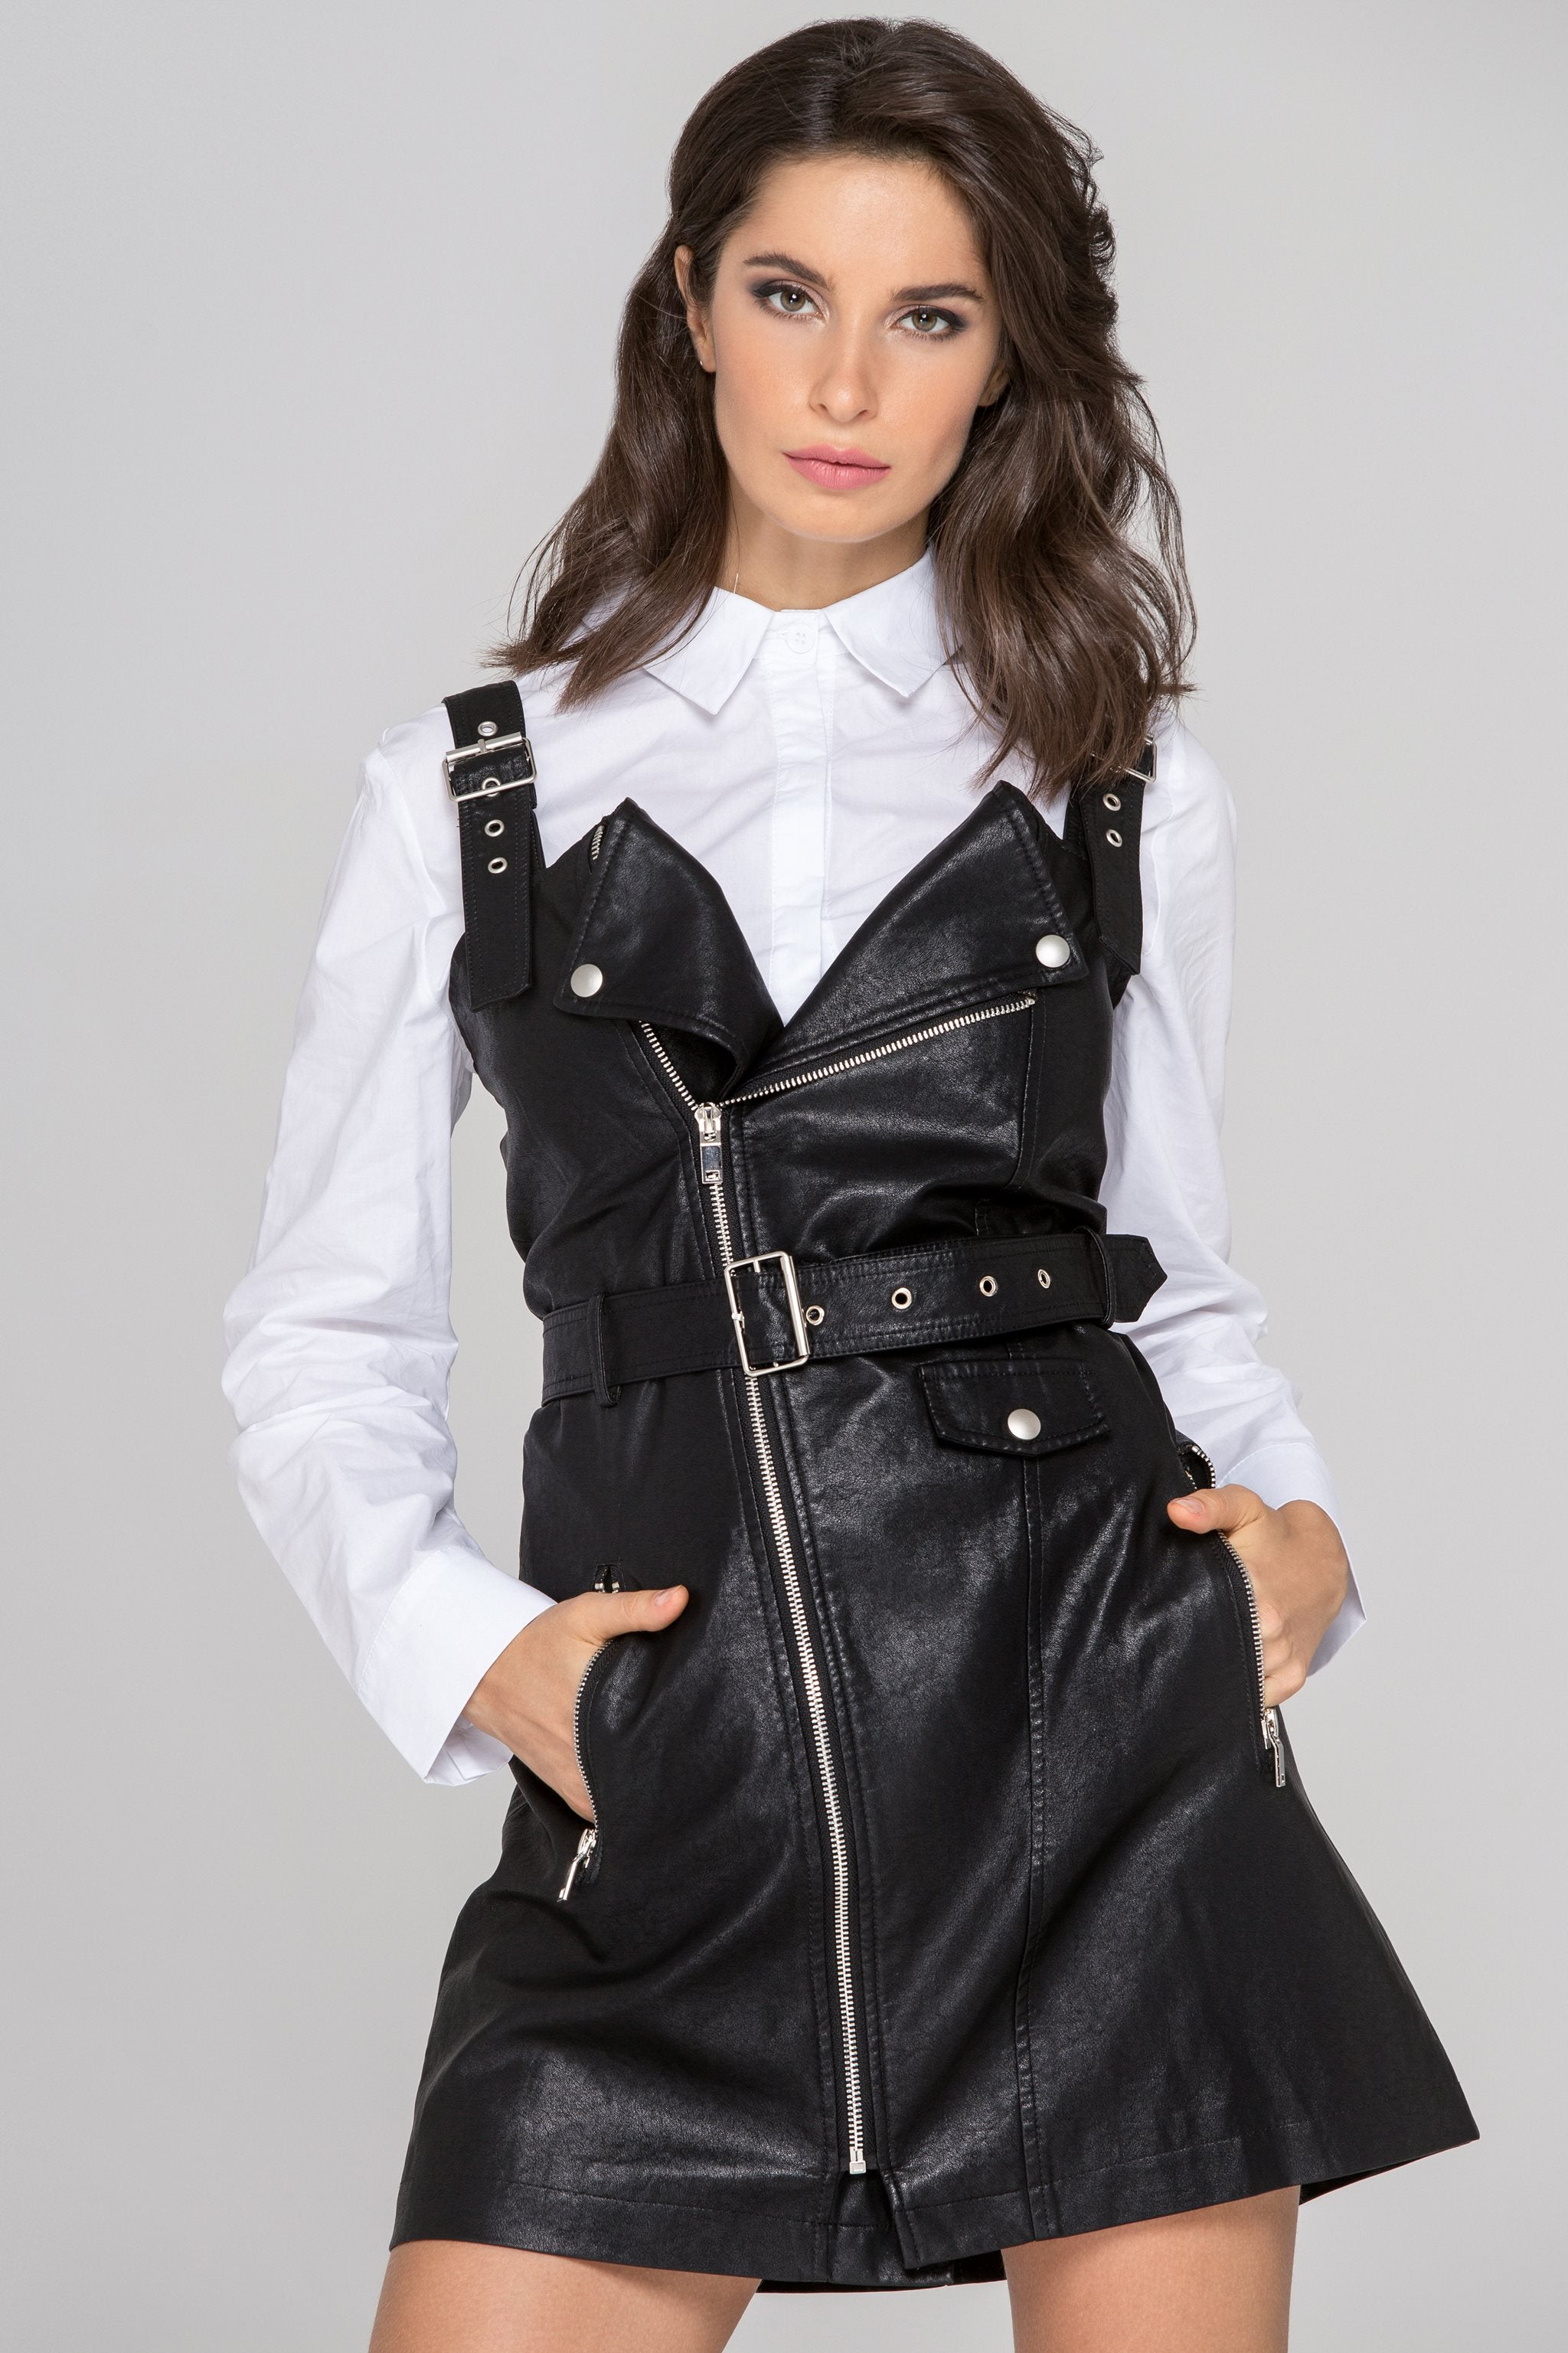 beff21f082a Own The Look - Black Faux Leather Biker Dress Set - OwnTheLooks 2.jpg v 1527264659